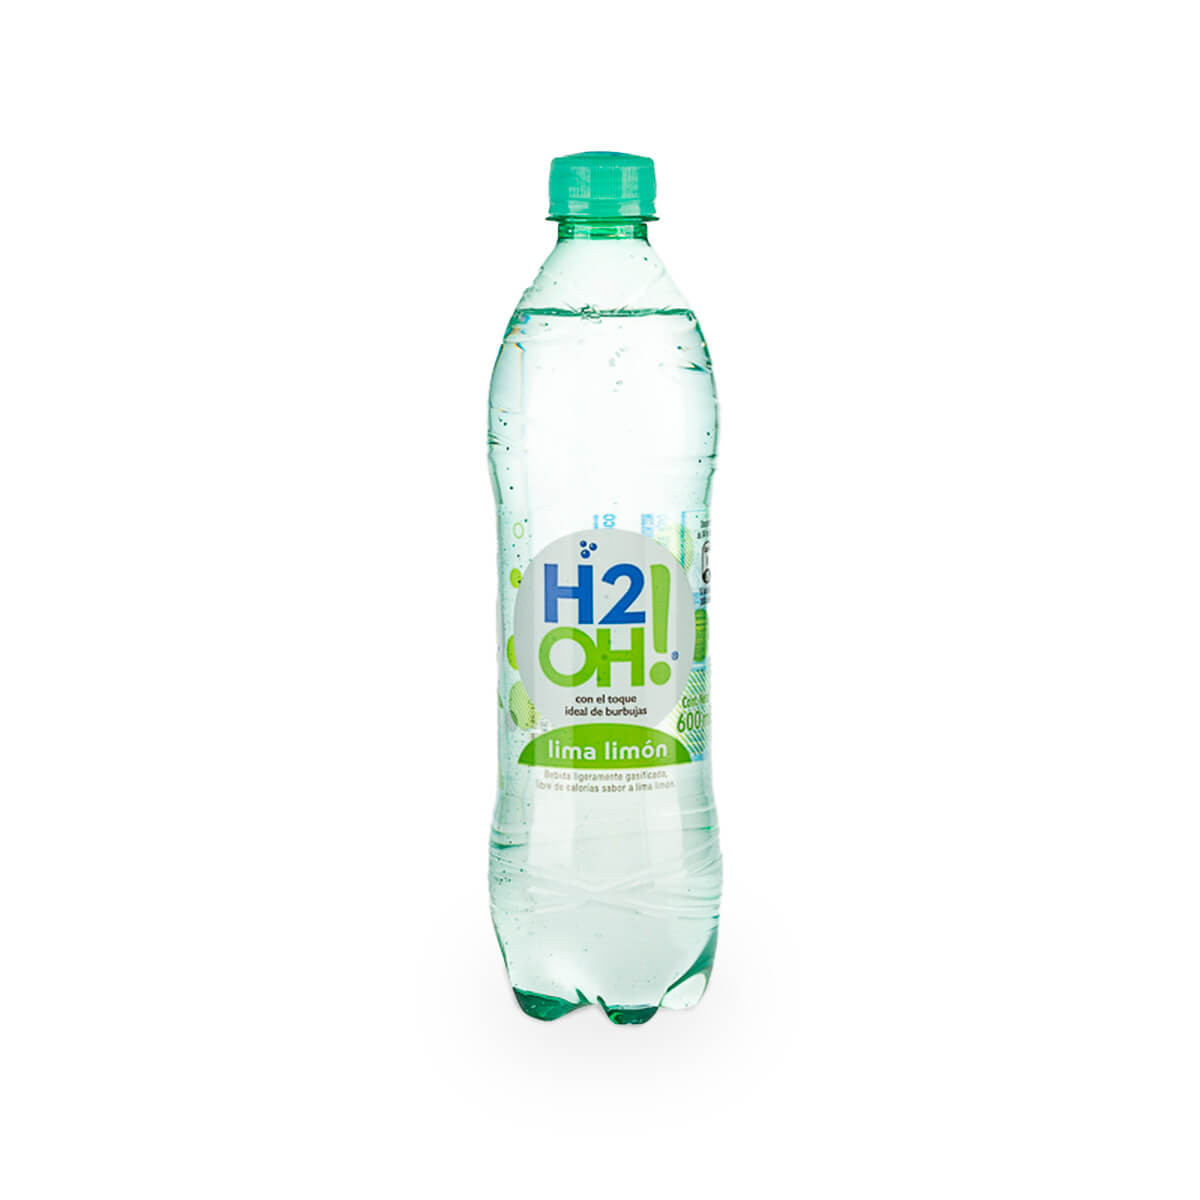 AGUA H2OH 600M LIMON